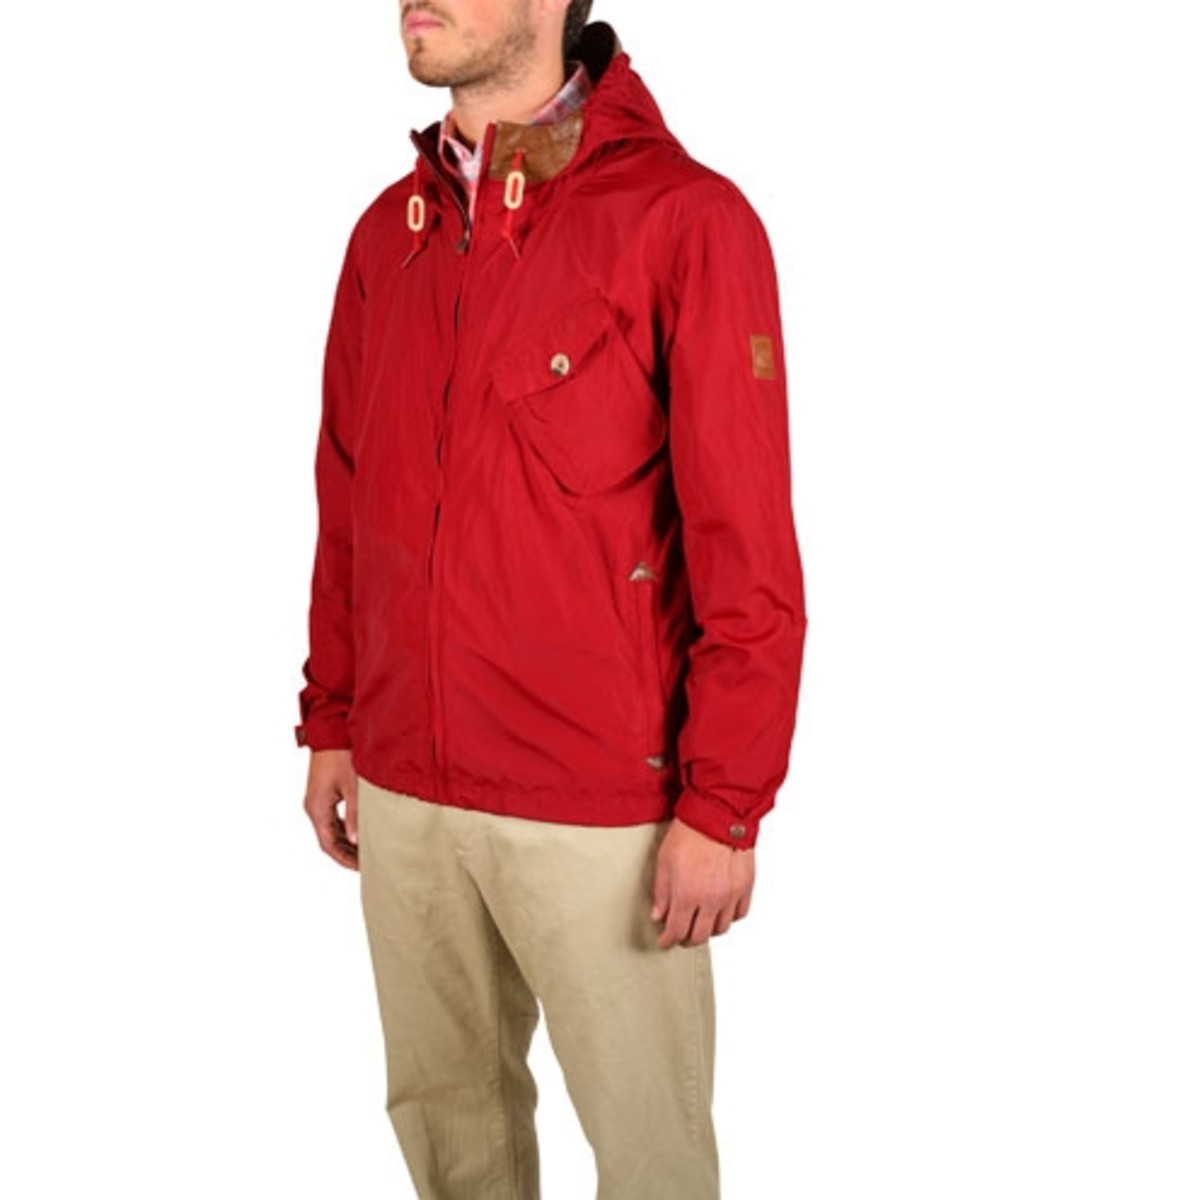 Penfield SS2011 Jackets 27